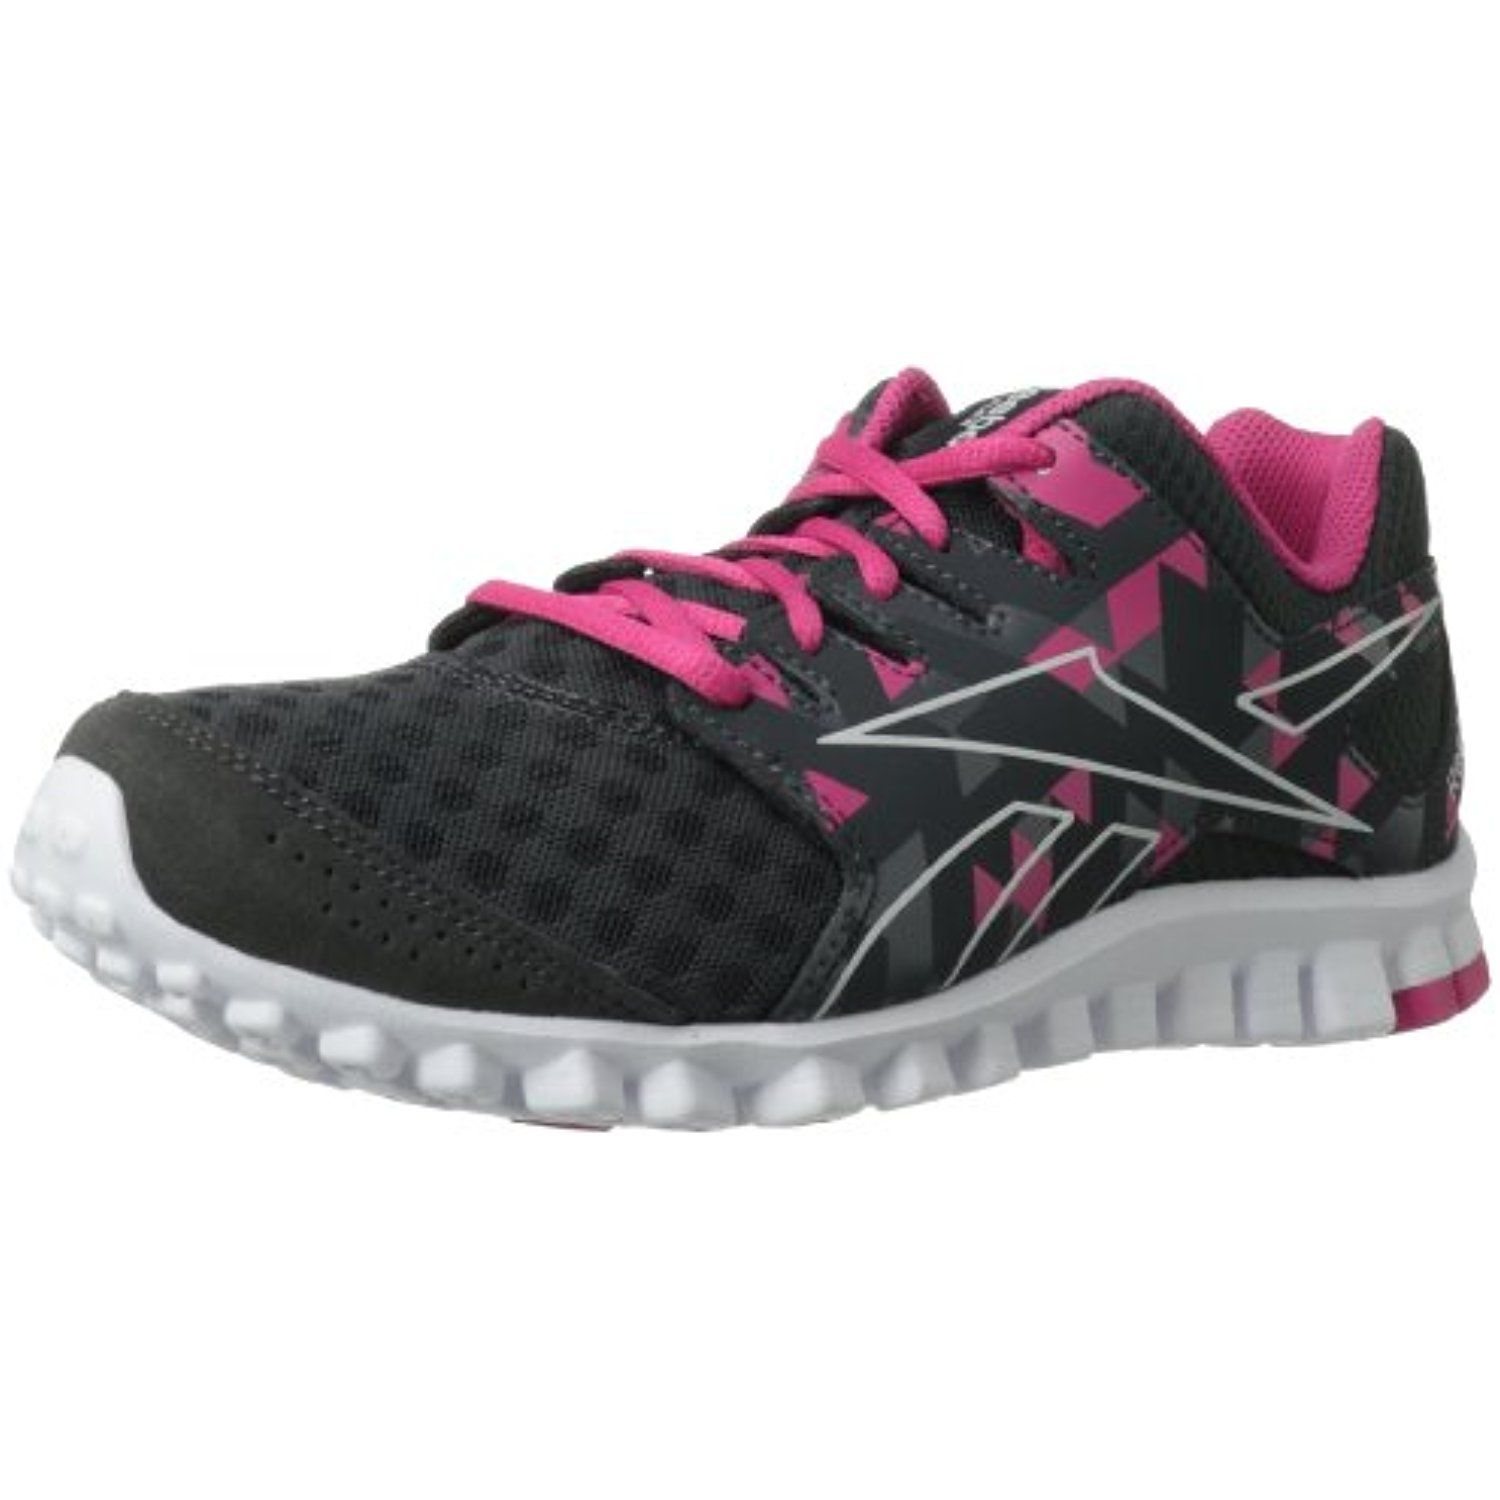 c9436c3f538cec Footwear Women s RealFlex Scream 3.0 Running Shoe     Click image to review  more details. (This is an affiliate link)  Shoes